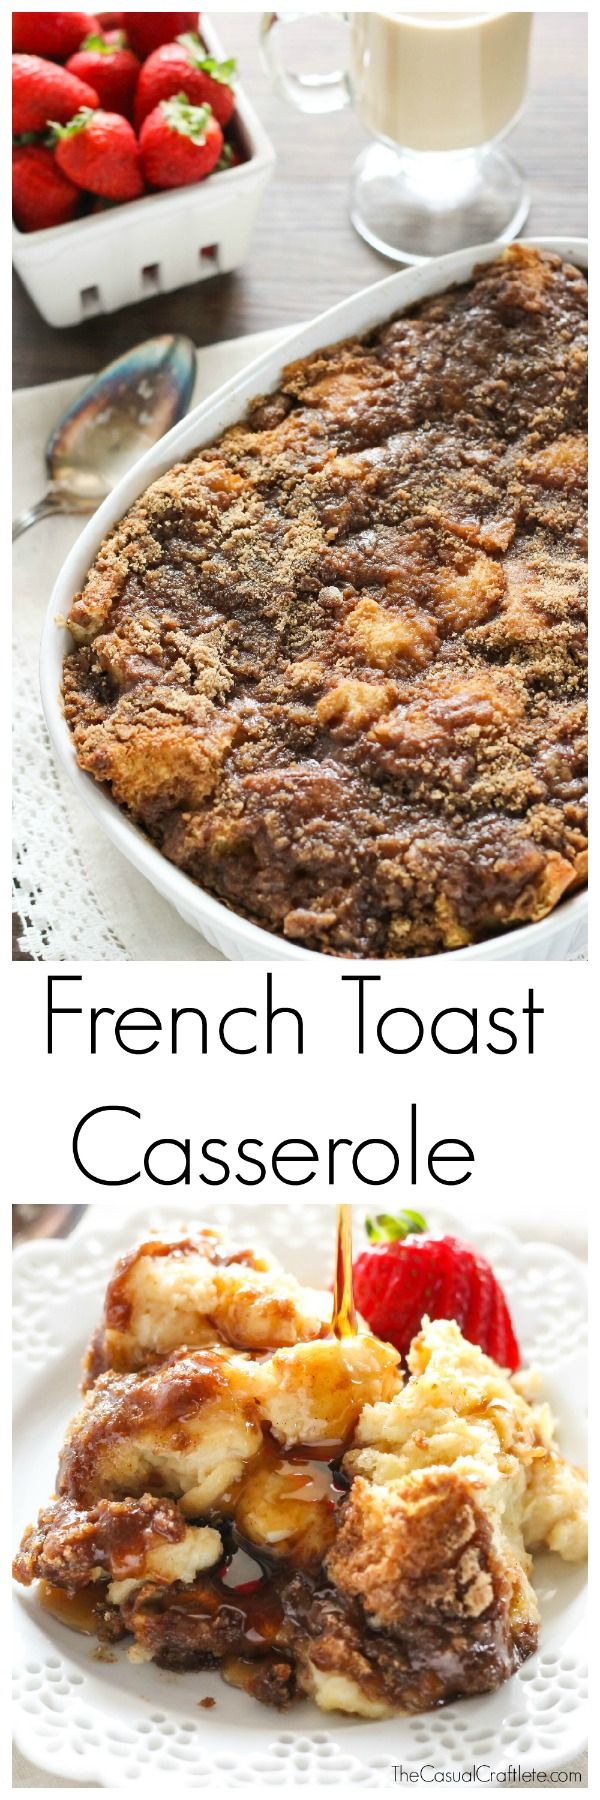 Overnight French Toast Casserole is great for the holidays! SO EASY!